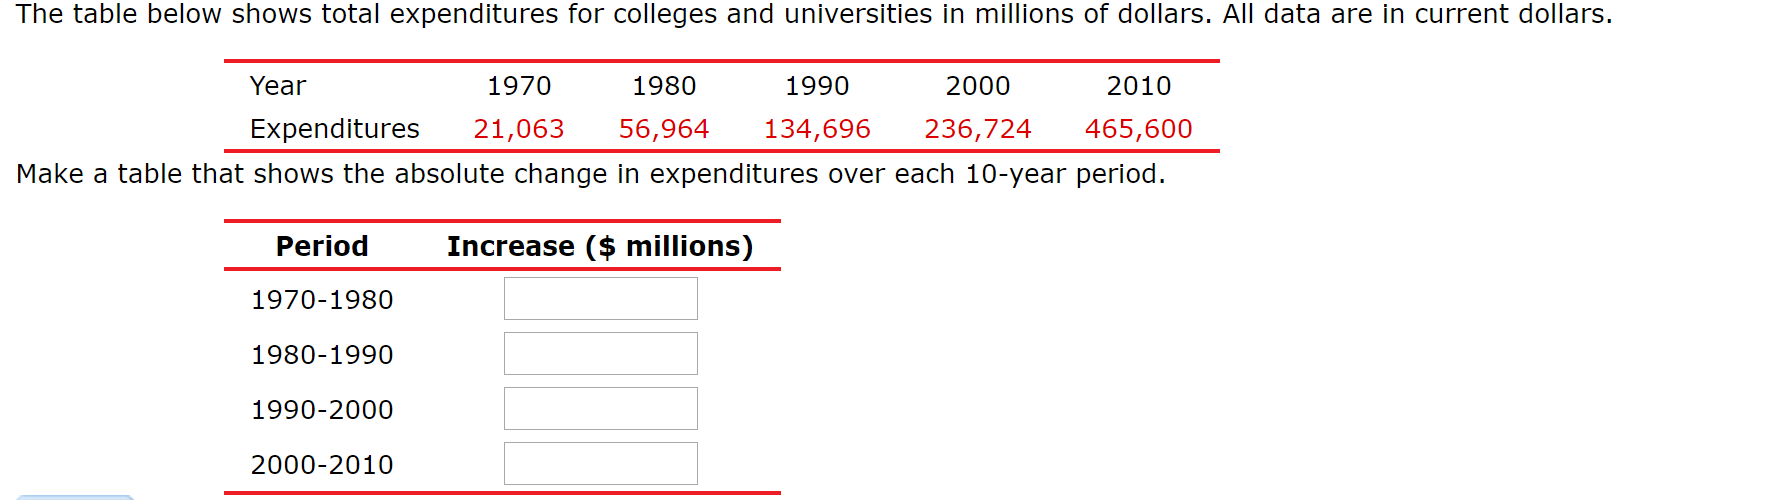 The table below shows total expenditures for colleges and universities in millions of dollars. All data are in current dollars. 1970 Year 1980 1990 2000 2010 236,724 Expenditures 21,063 56,964 134,696 465,600 Make a table that shows the absolute change in expenditures over each 10-year period. Increase ($ millions) Period 1970-1980 1980-1990 1990-2000 2000-2010